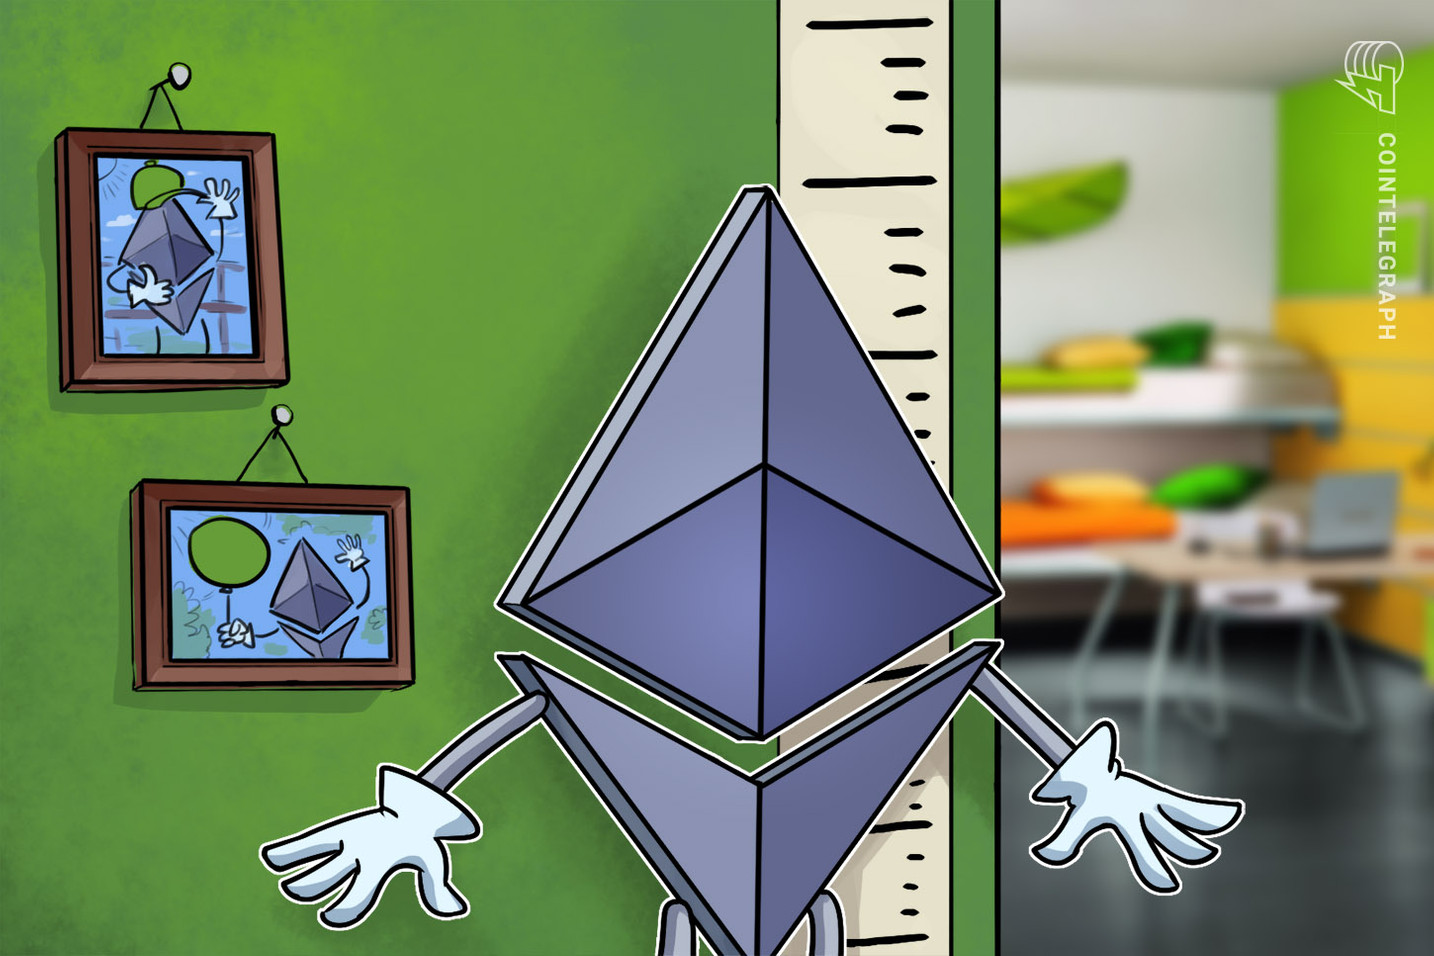 Bitcoin price nears $16K, but it's Ethereum that may shine in November